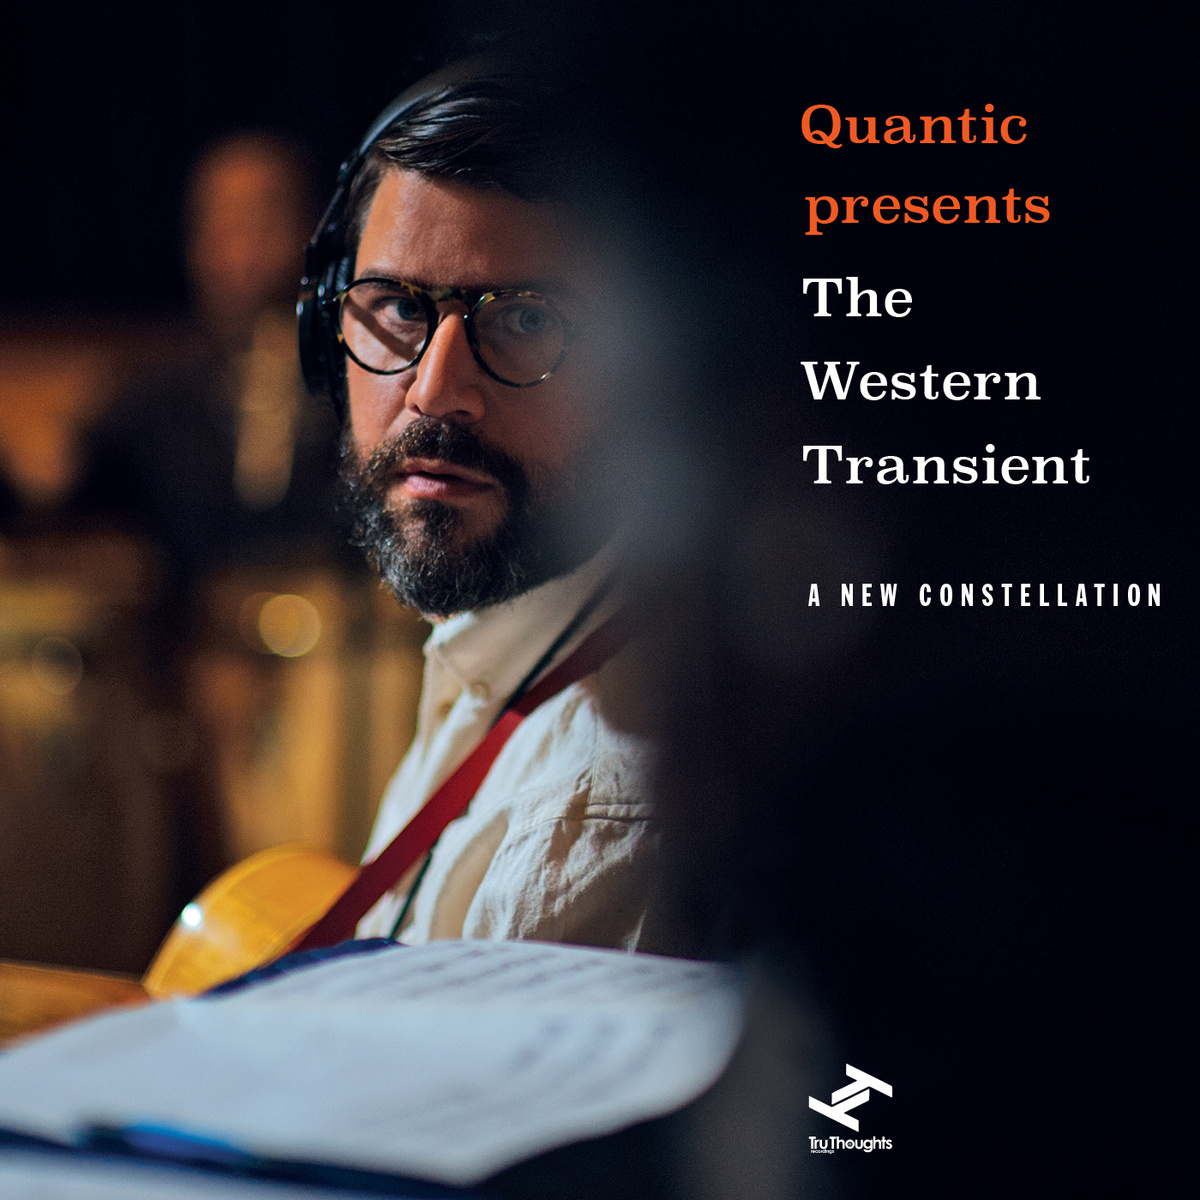 Quantic presents the Western Transient